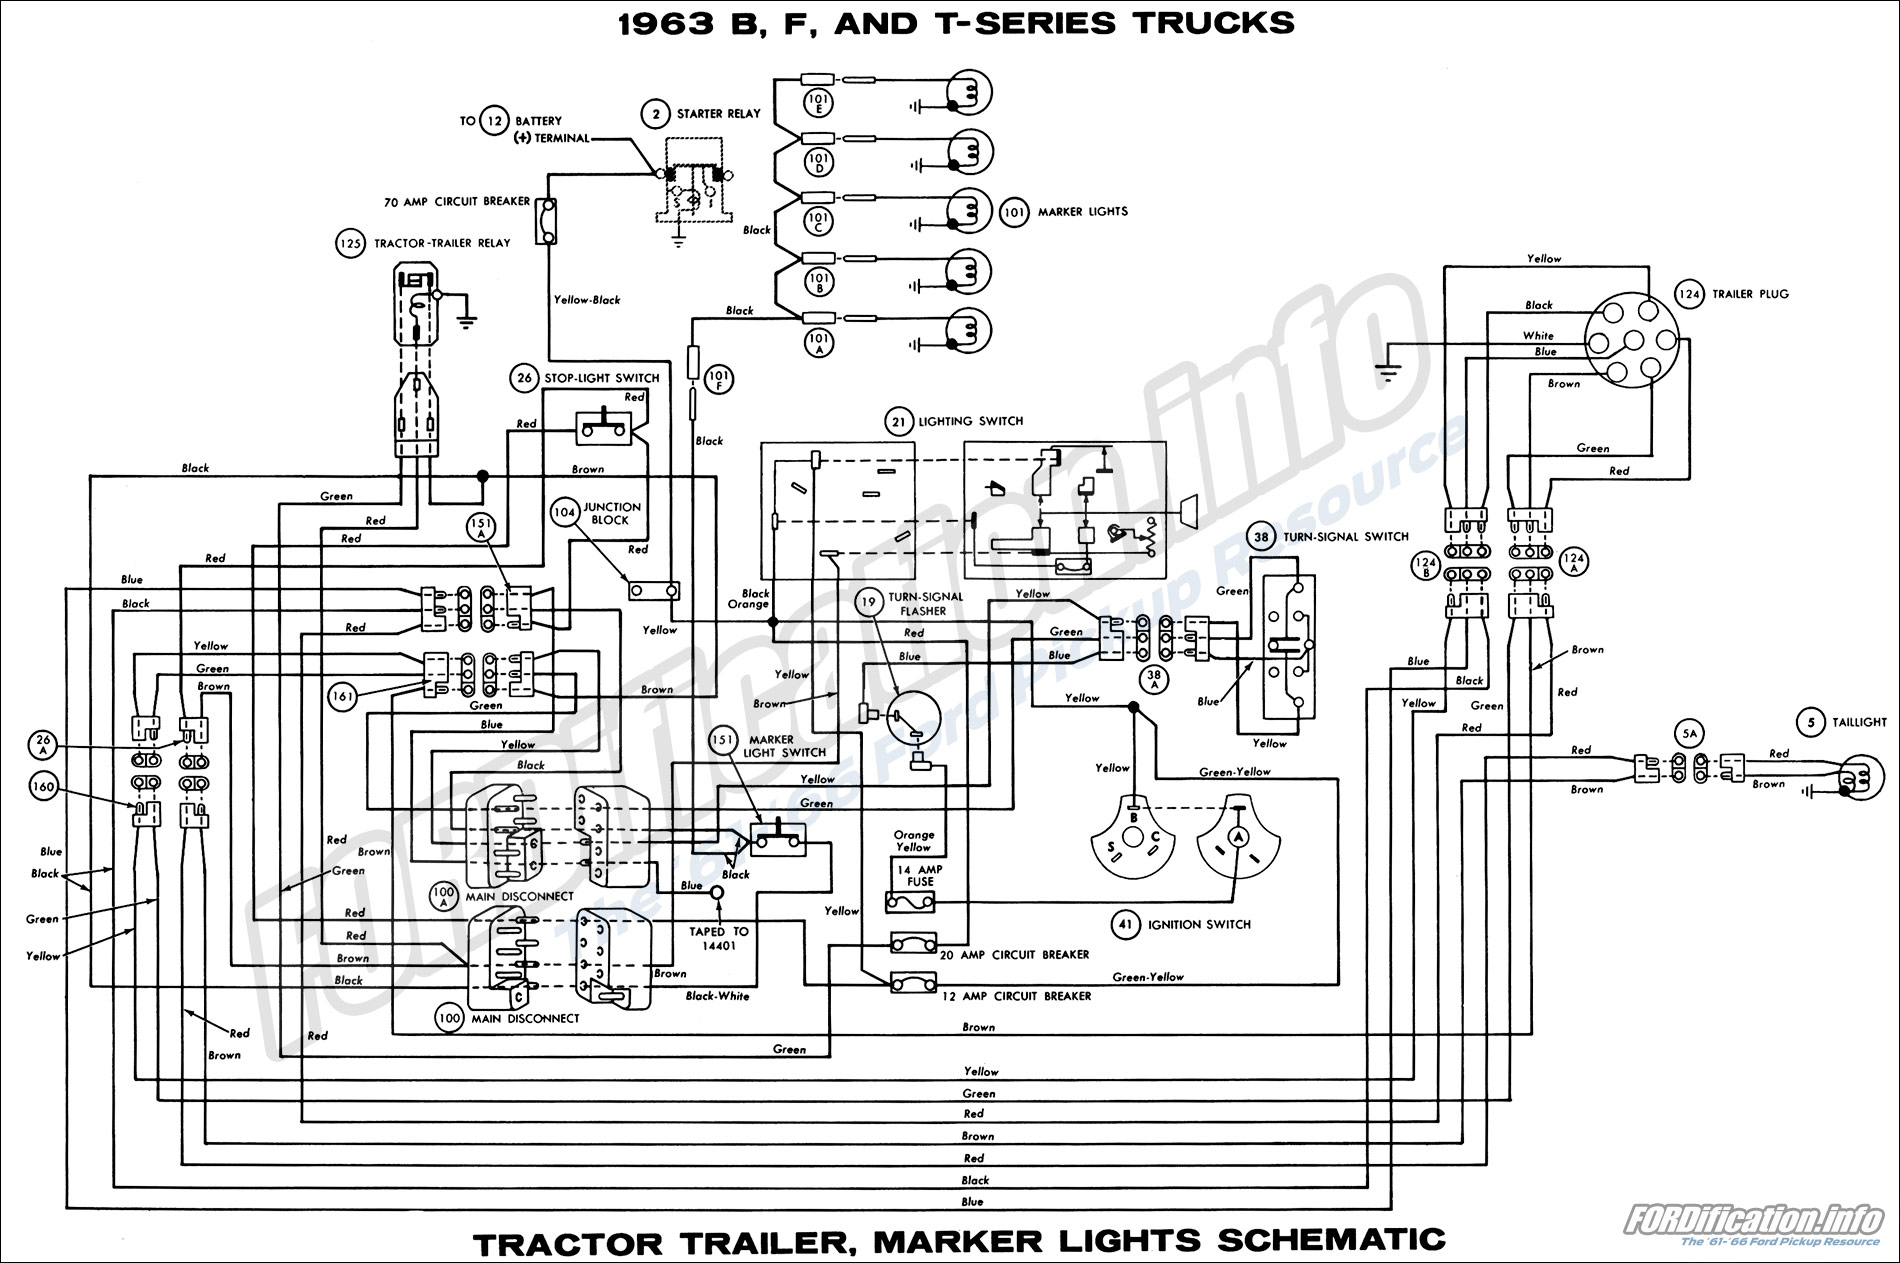 1963 Ford Truck Wiring Diagrams The 61 66 Lights In A Series B F And T Trucks Tractor Trailer Marker Schematic